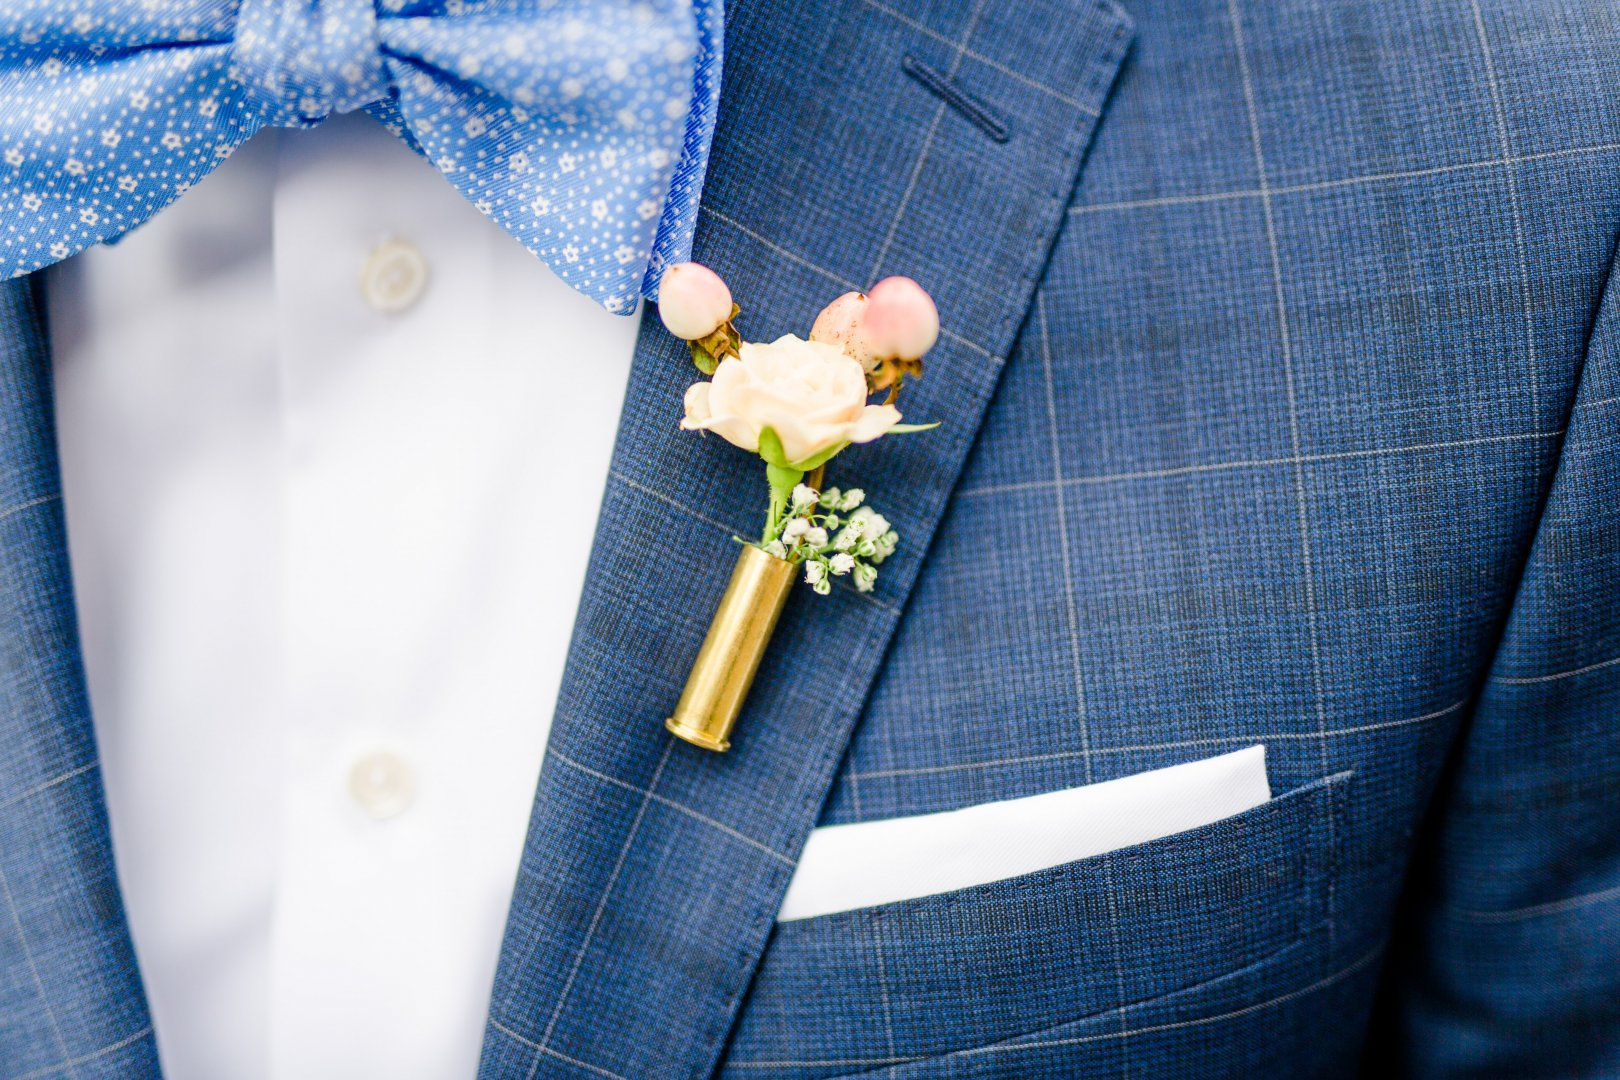 Denim Blue Jeans Clothing Pocket Yellow Textile Button Flower Formal wear Outerwear Plant Photography Suit Fashion accessory Tie Pattern Wildflower Plaid